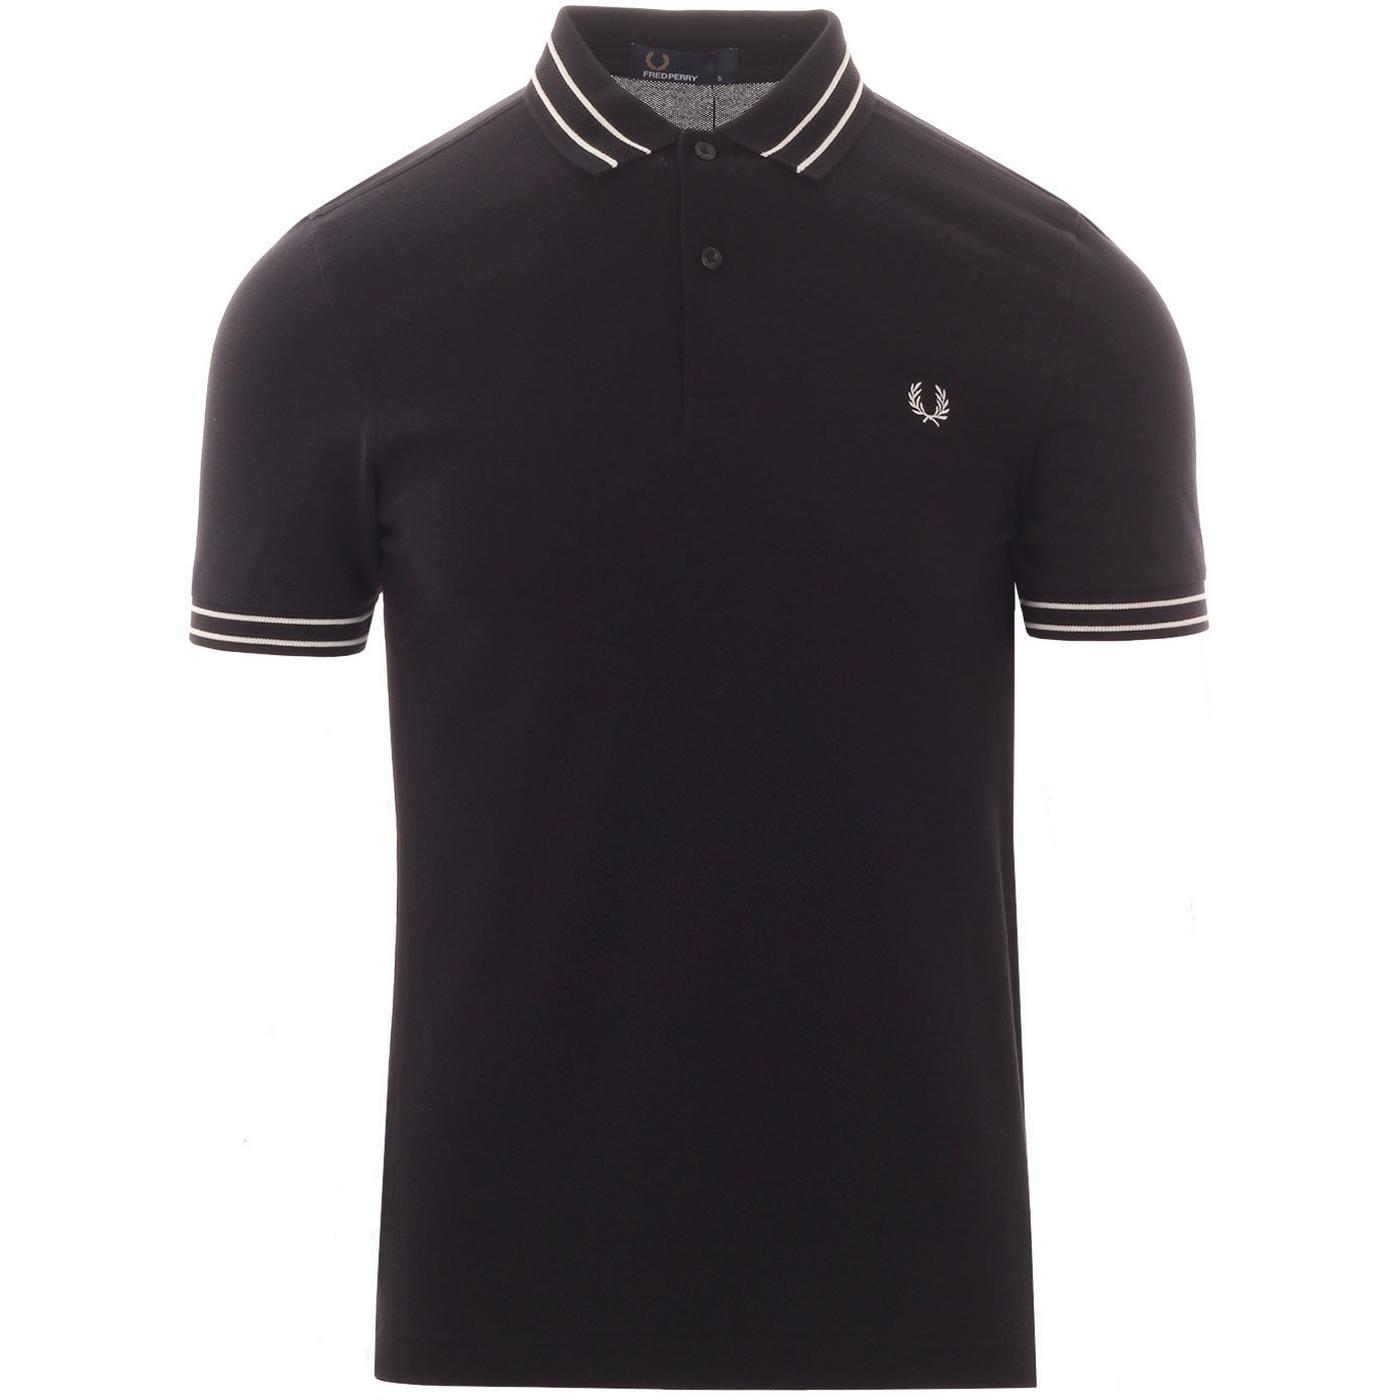 FRED PERRY Tramline Tipped Mod Pique Polo Shirt